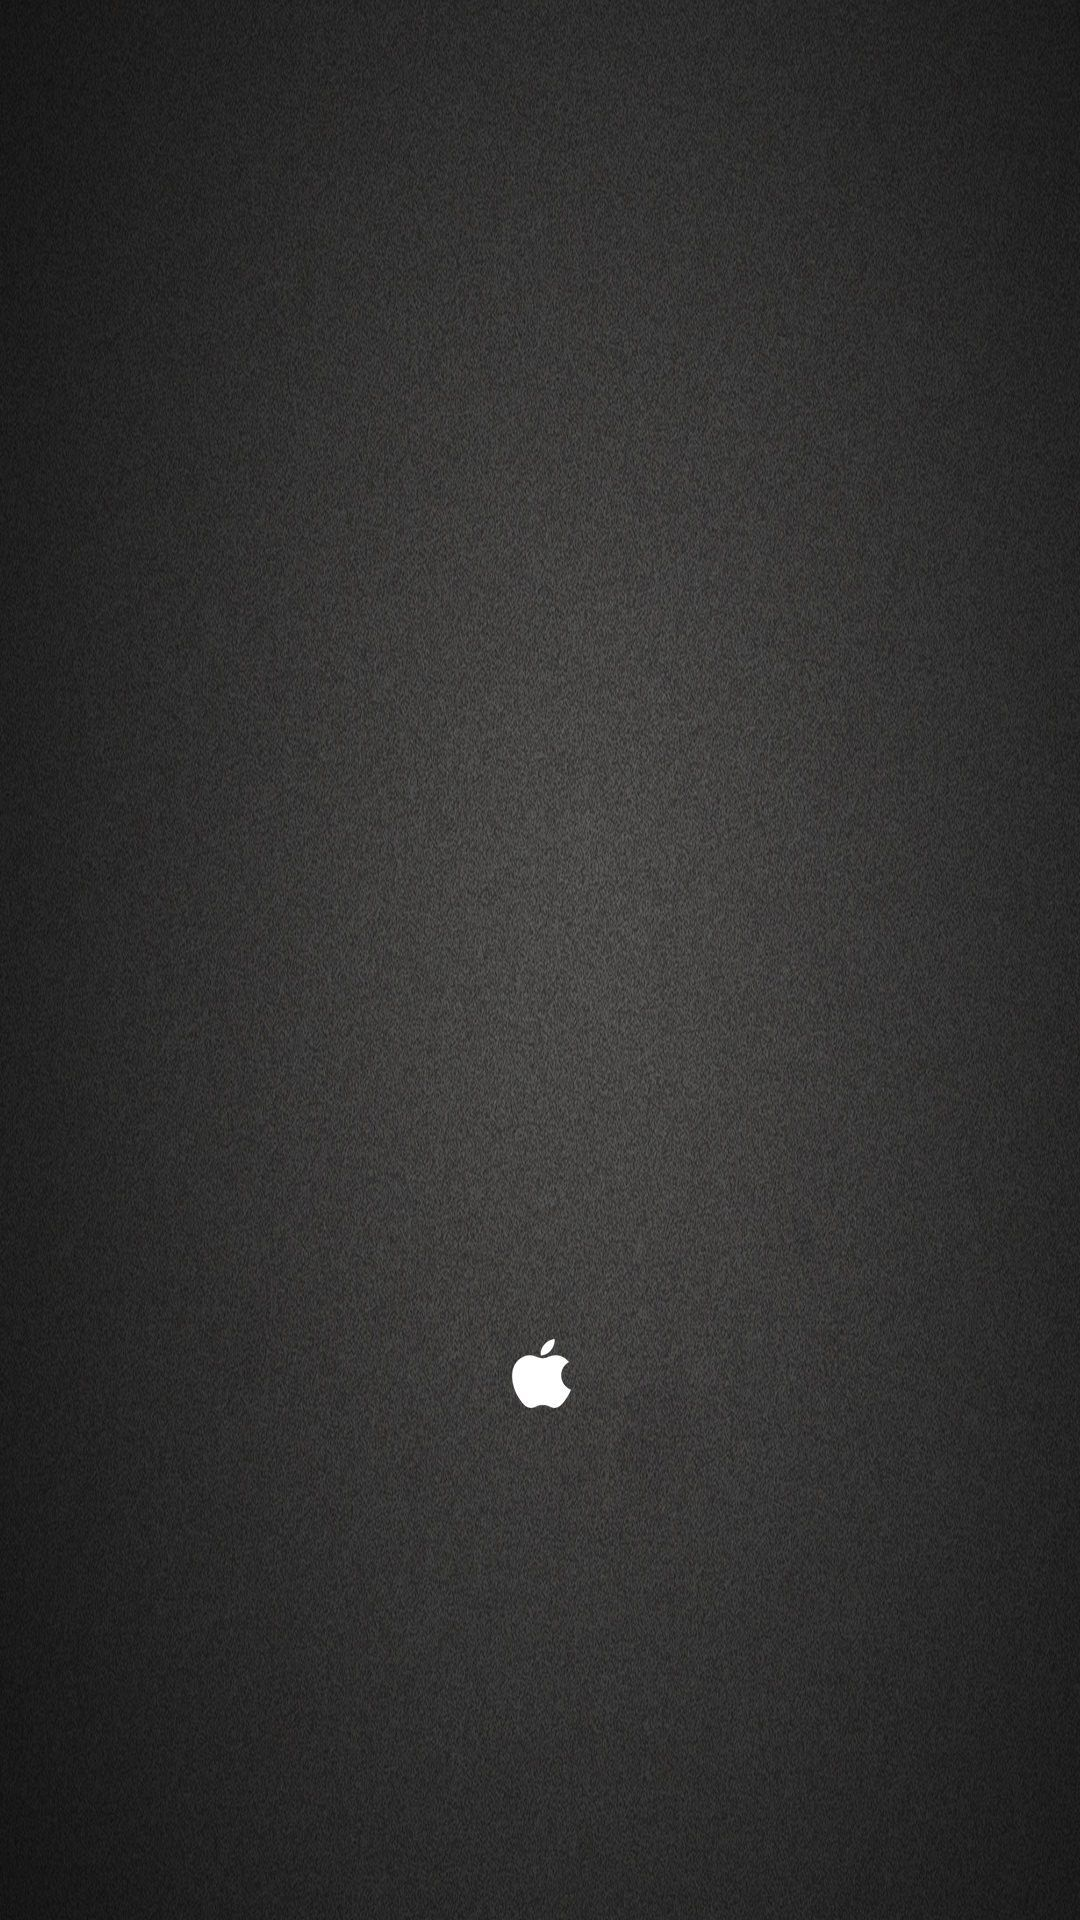 Get Great Black Wallpaper for iPhone 2019